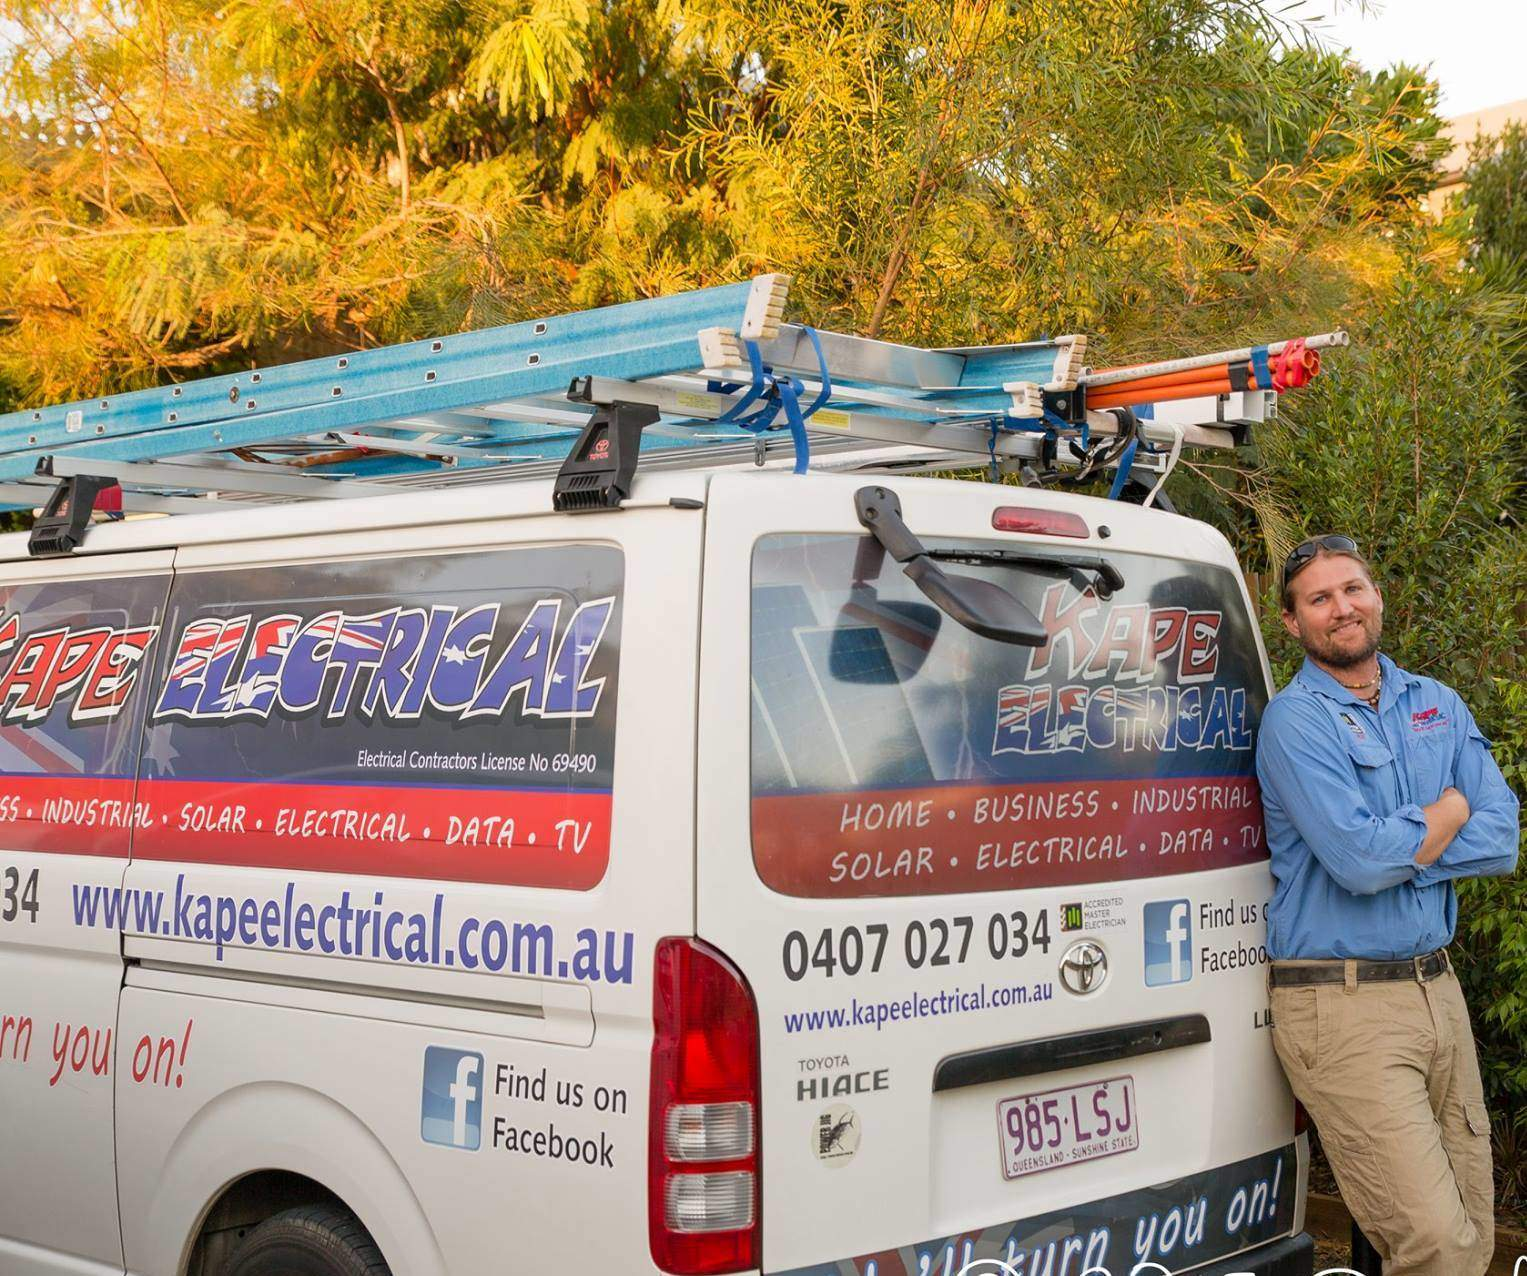 Kape Electrical Sunshine Coast Electrician Buderim Electrician Nambour Electrician Kiels Mountain Electrician Solar Data TV AirCon Installer Sunshine Coast Solar